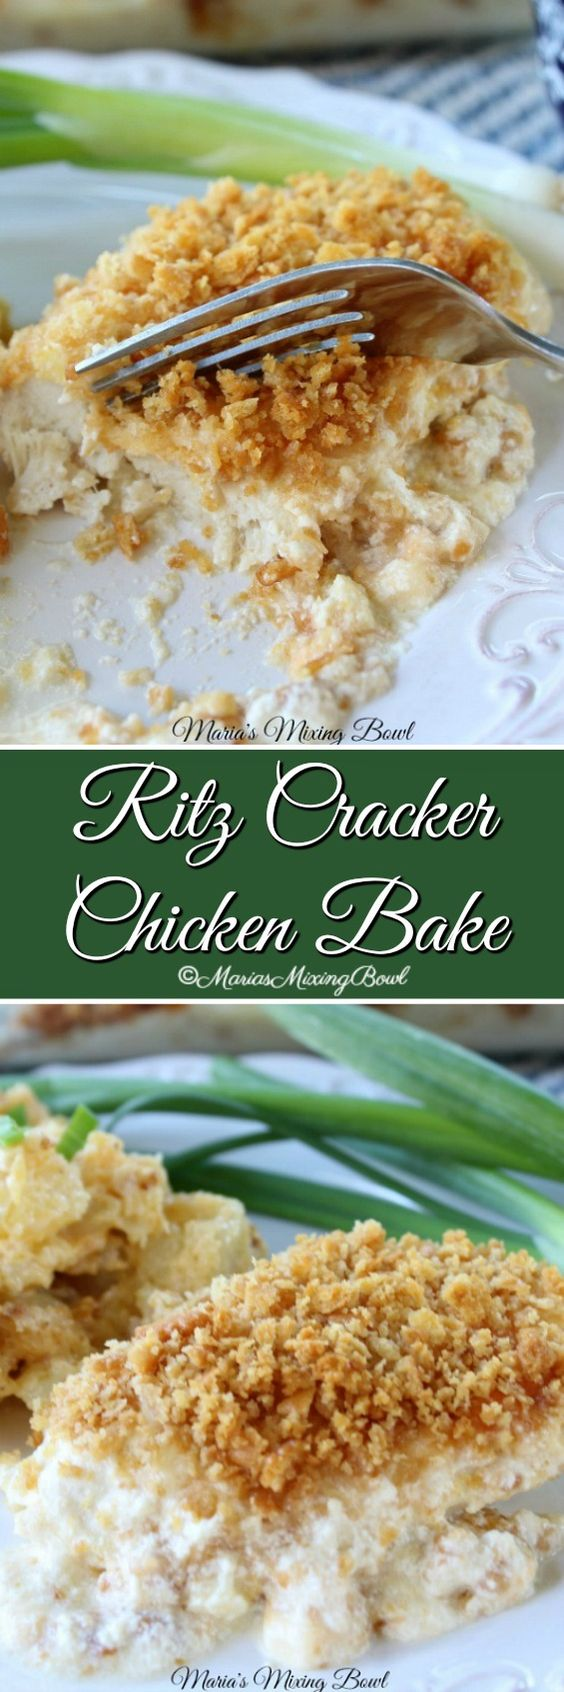 Ritz Cracker Chicken Bake - Tender, juicy chicken is topped with buttery crackers and a few other goodies.  This baked chicken dish your whole family  is sure to love.